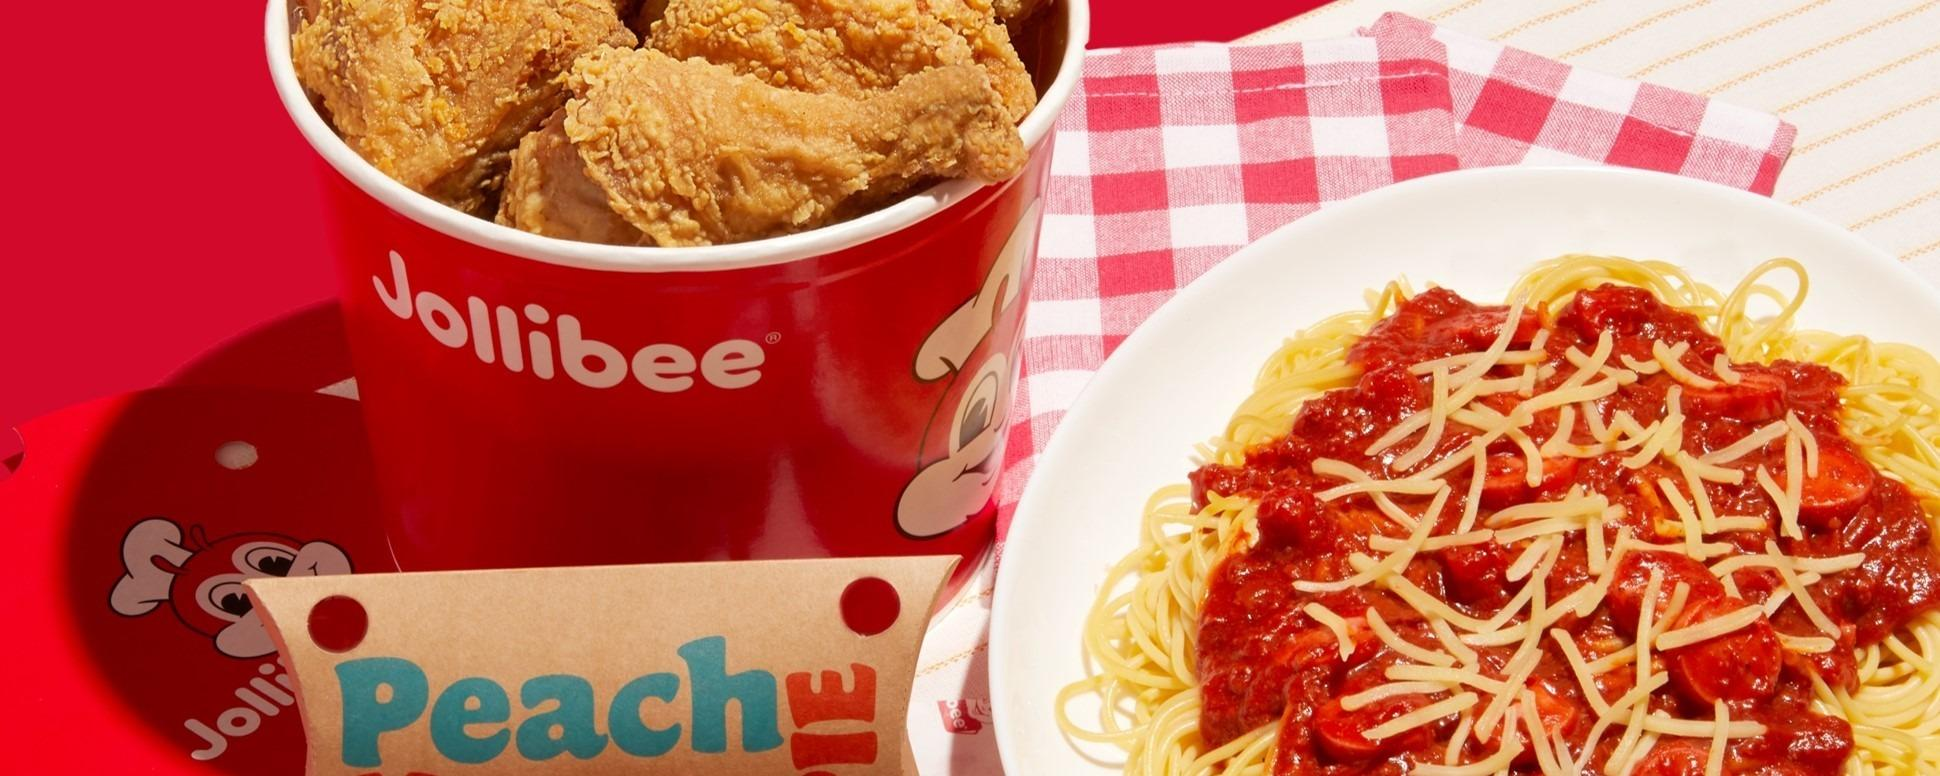 Jollibee Chicago Downtown Brand Cover